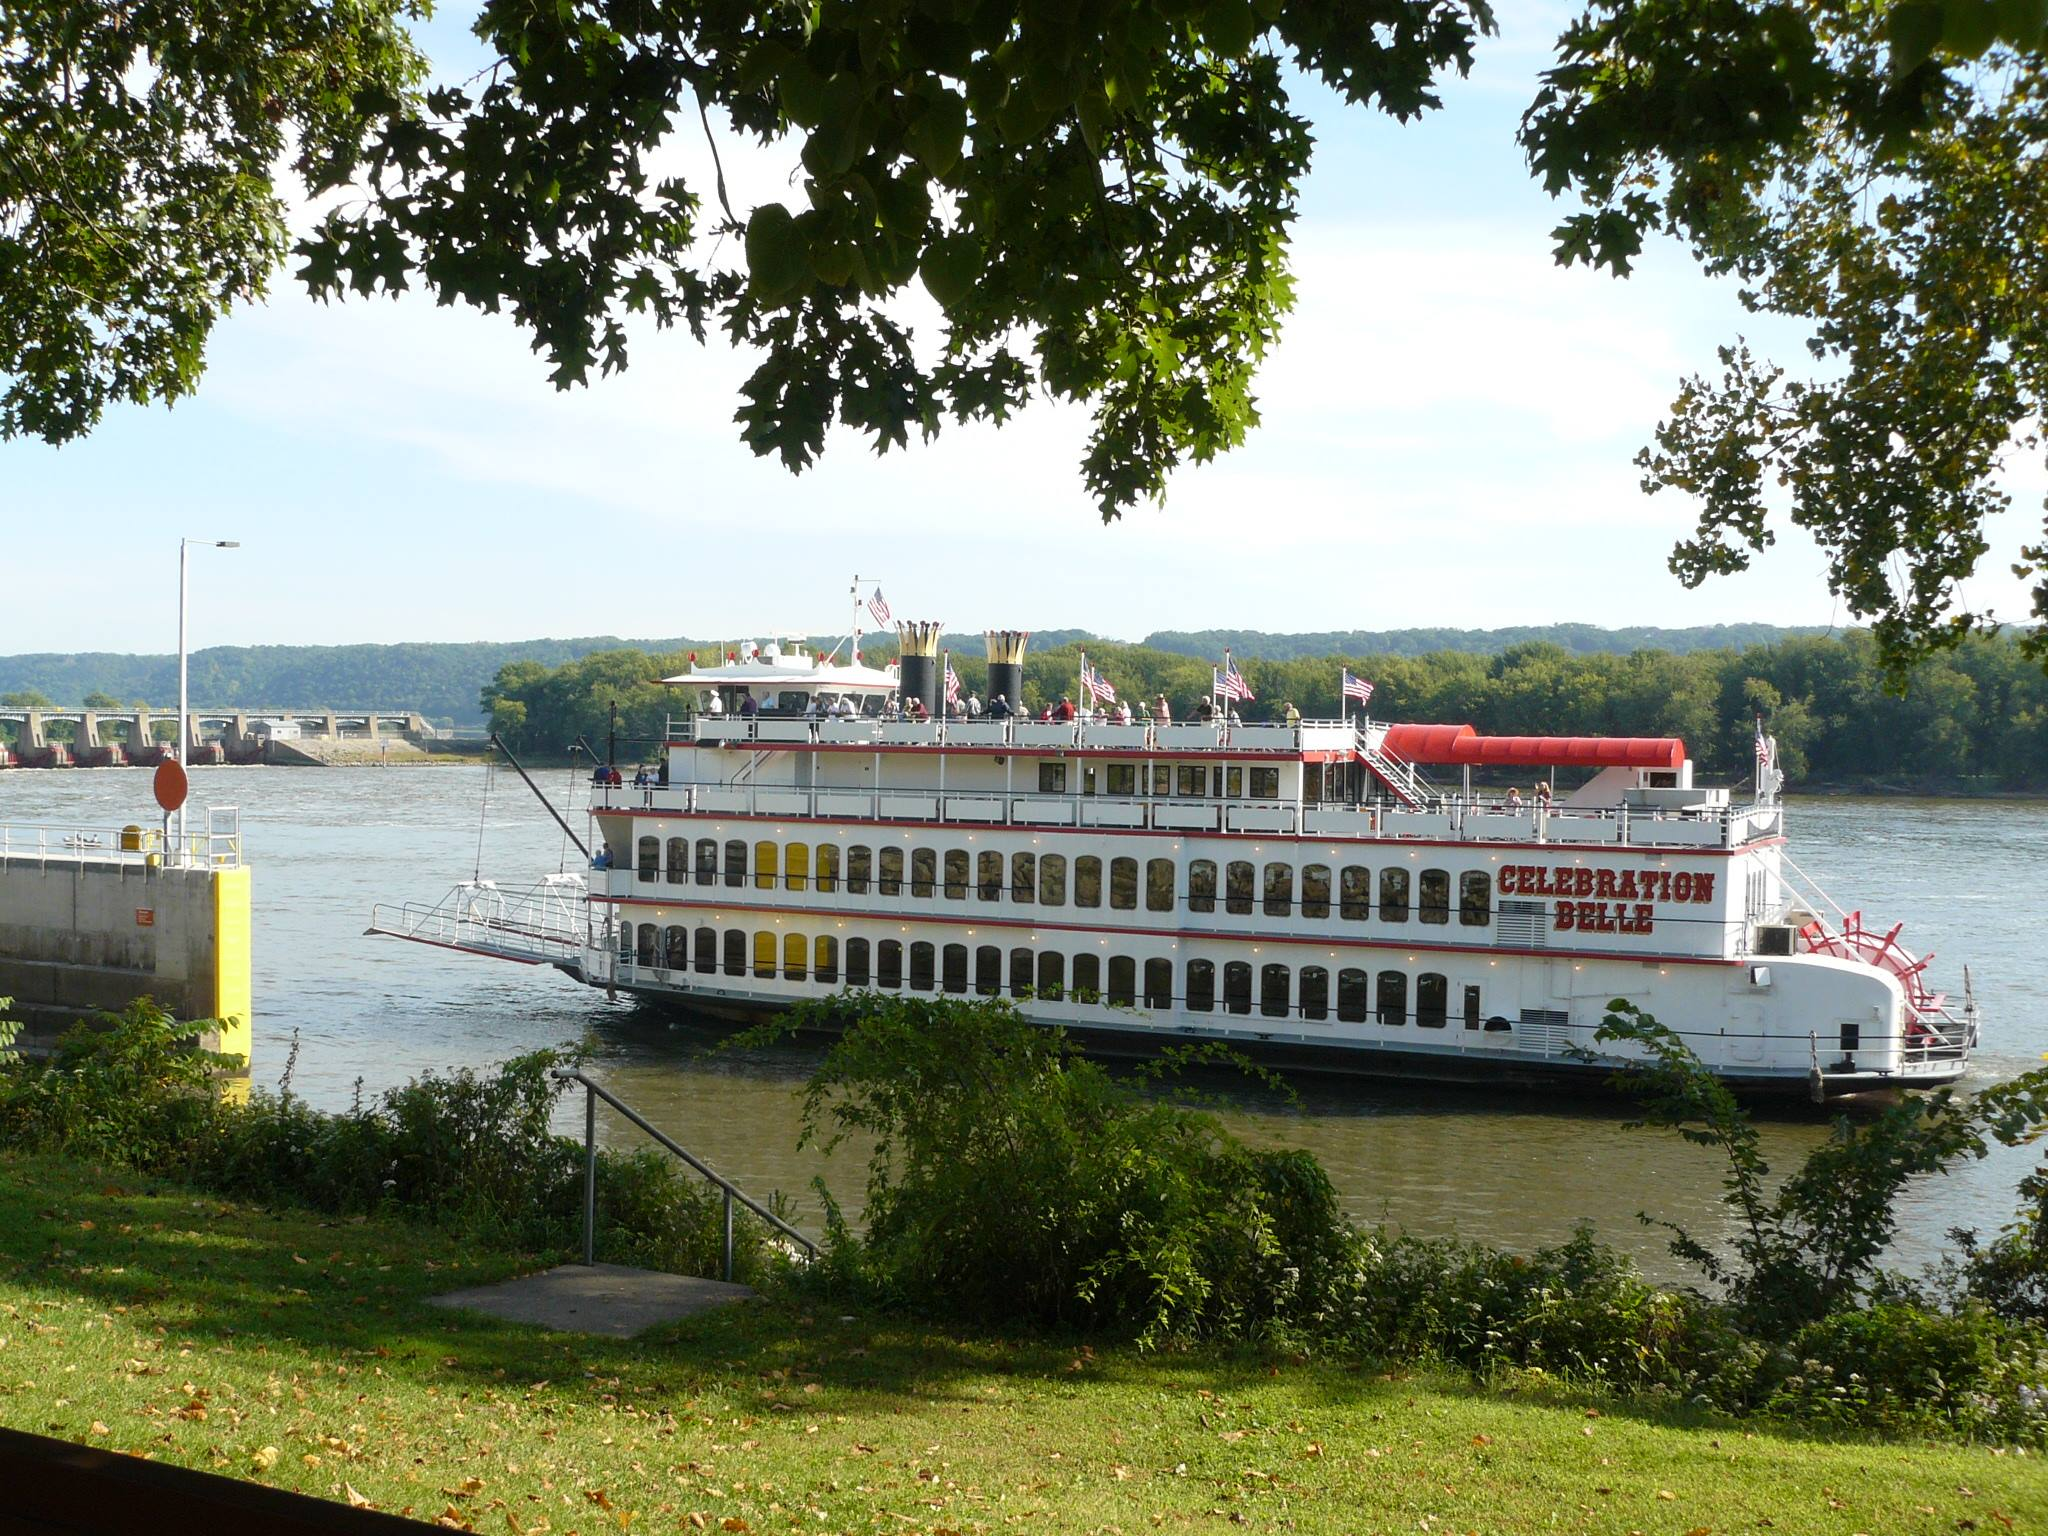 The Celebration Belle Is An Old Fashioned Paddle Boat In Iowa